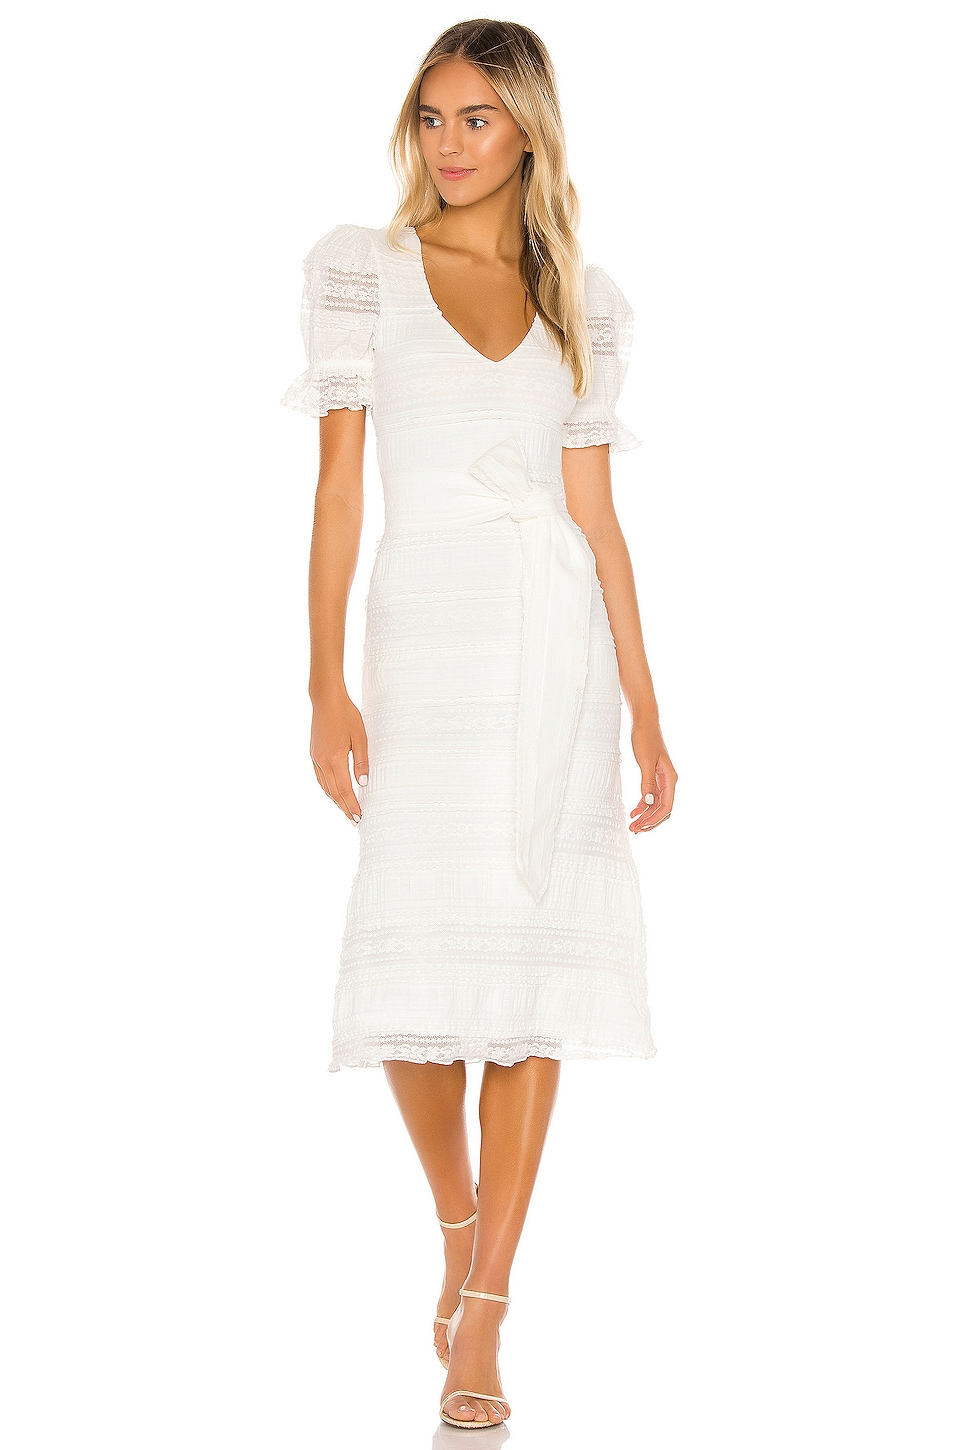 Quinn Midi Dress             Tularosa                                                                                                       CA$ 235.91 18